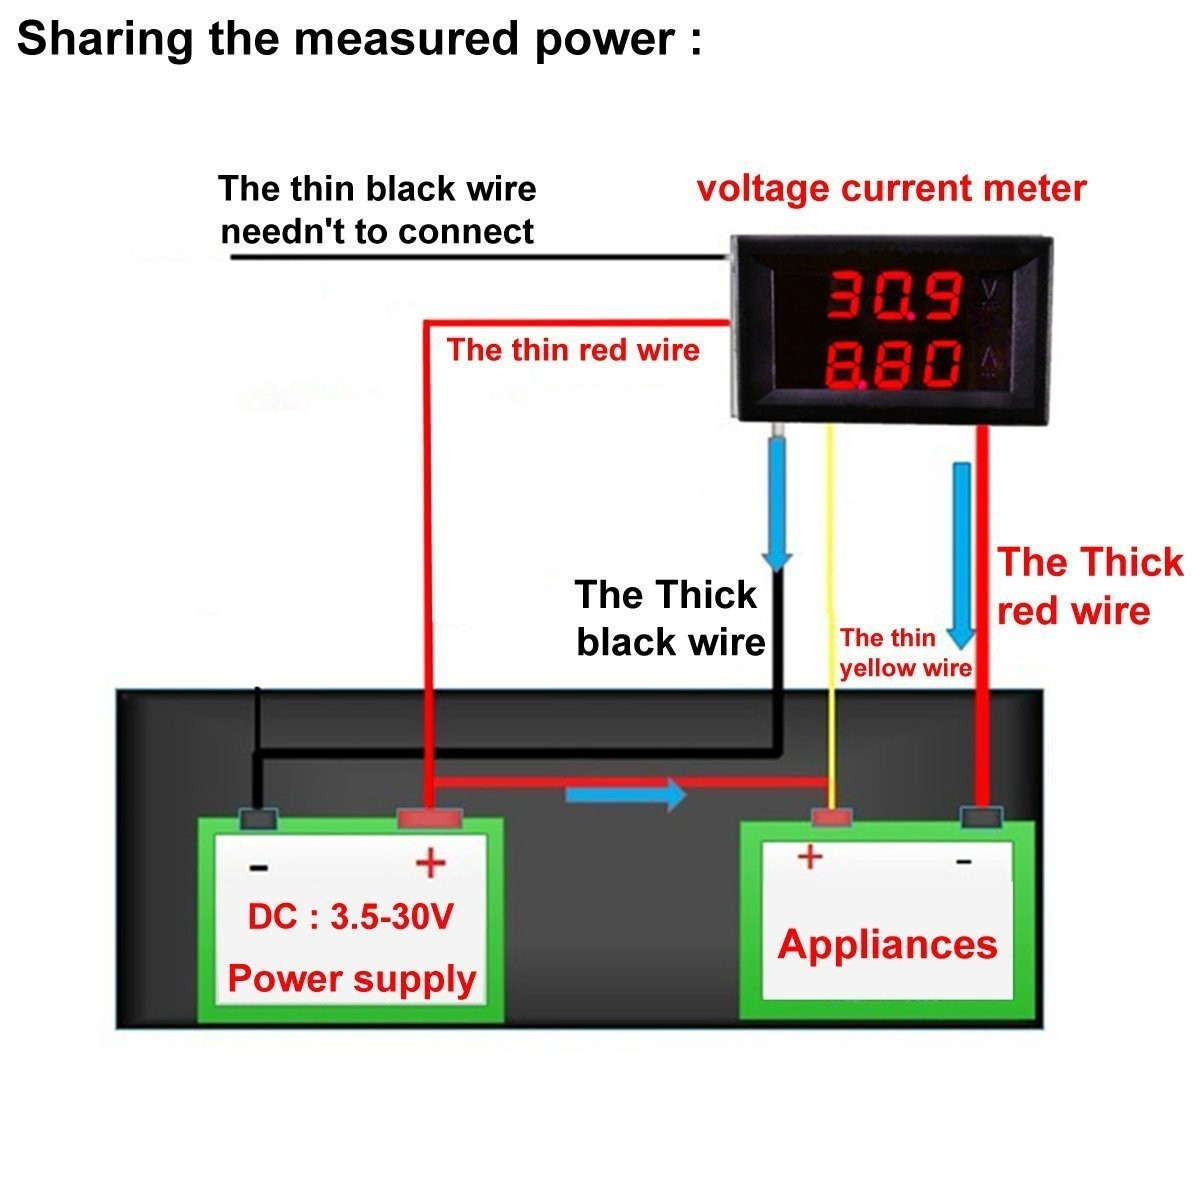 Volt Amp Meter Wiring Diagram 29 Images Dc 330v 1a Voltage Current Measurement Led Display Red Blue 7 Riorand Panel Gauge 2in1 0 33 0v